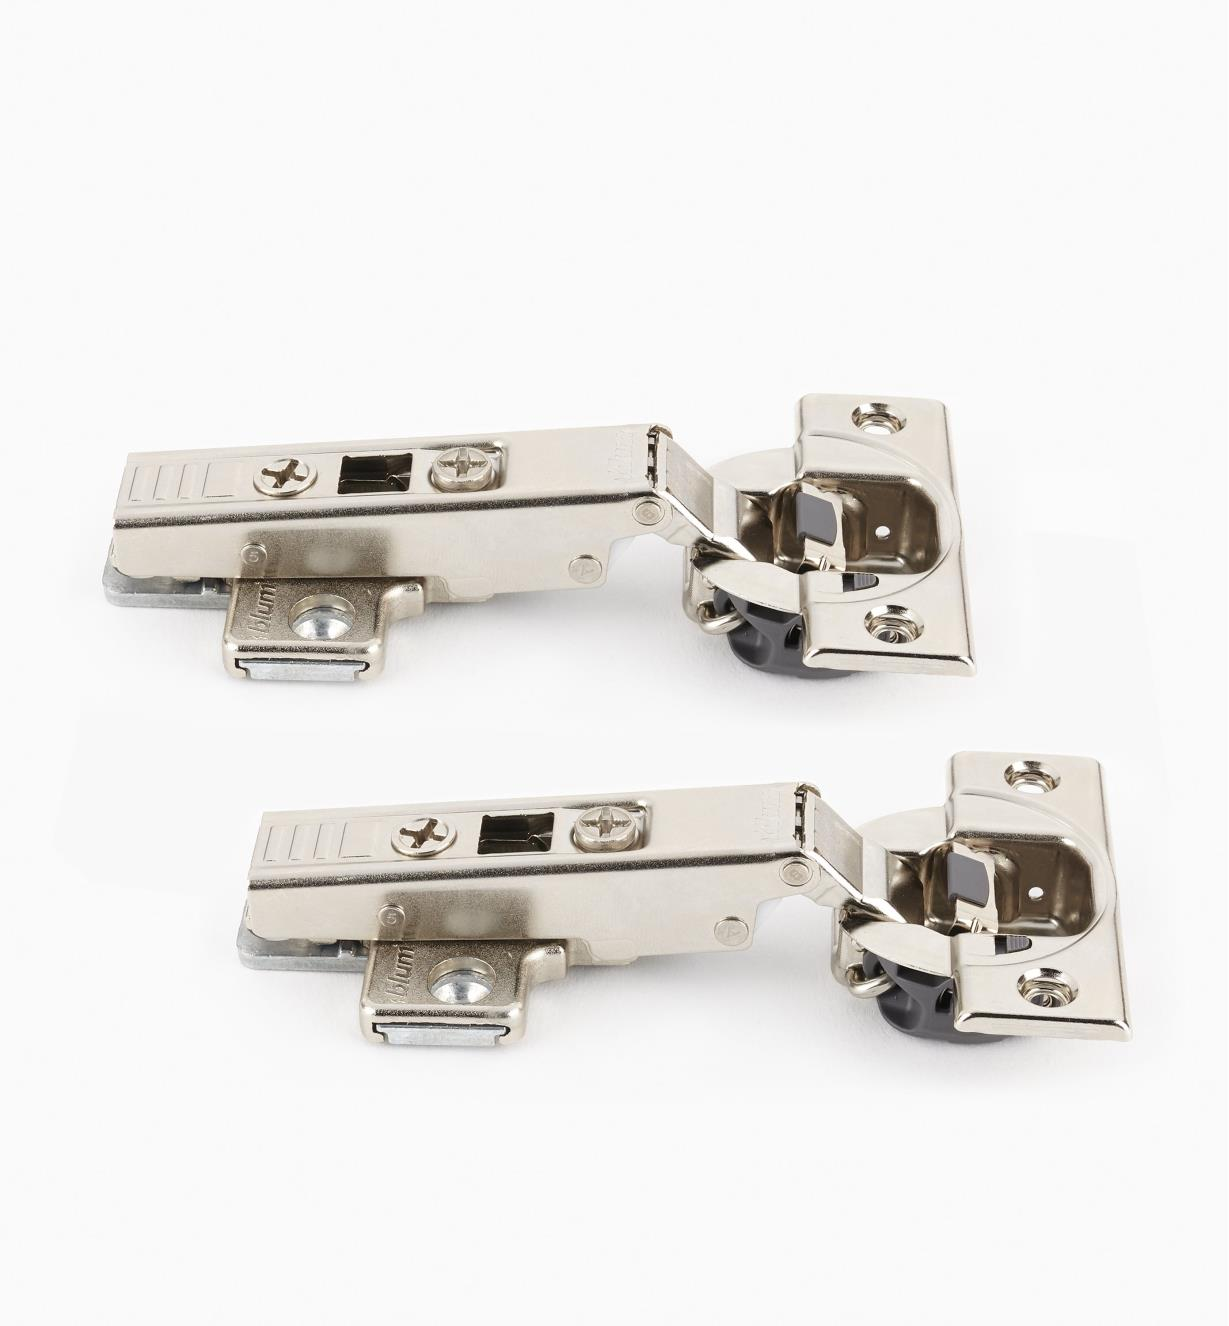 00B1801 - Blum Standard 110° Soft-Close Clip-Top Overlay Hinges, pr